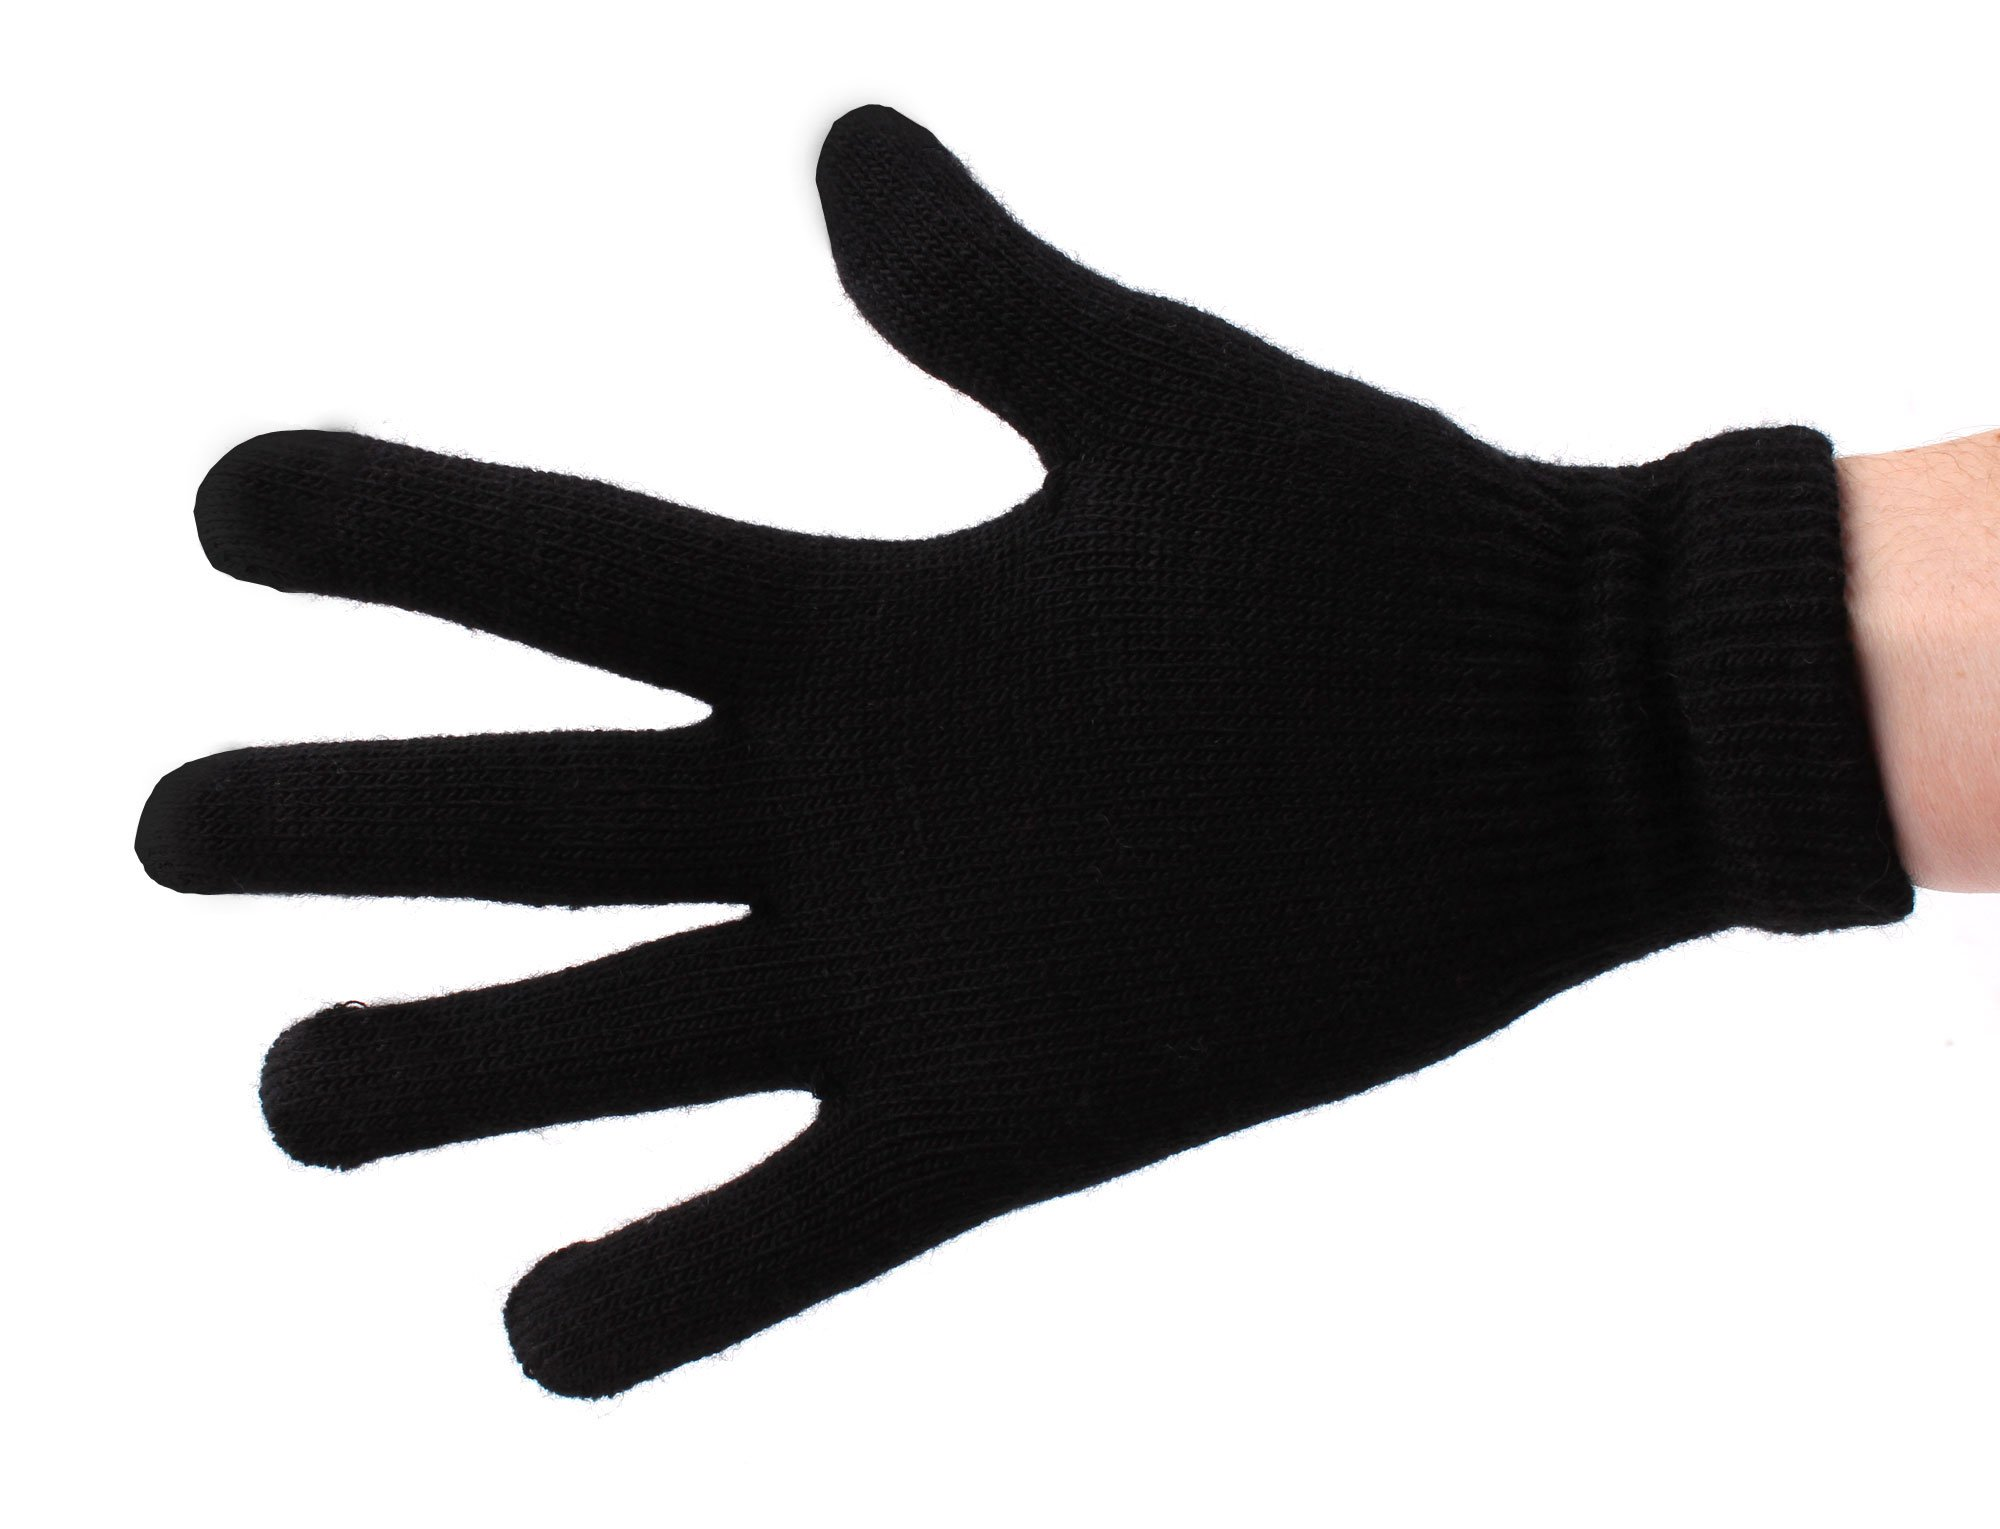 DURAGADGET Touch Screen Compatible Medium Smartphone Gloves With Three Finger Capacitive Technology For LG Google Nexus 4